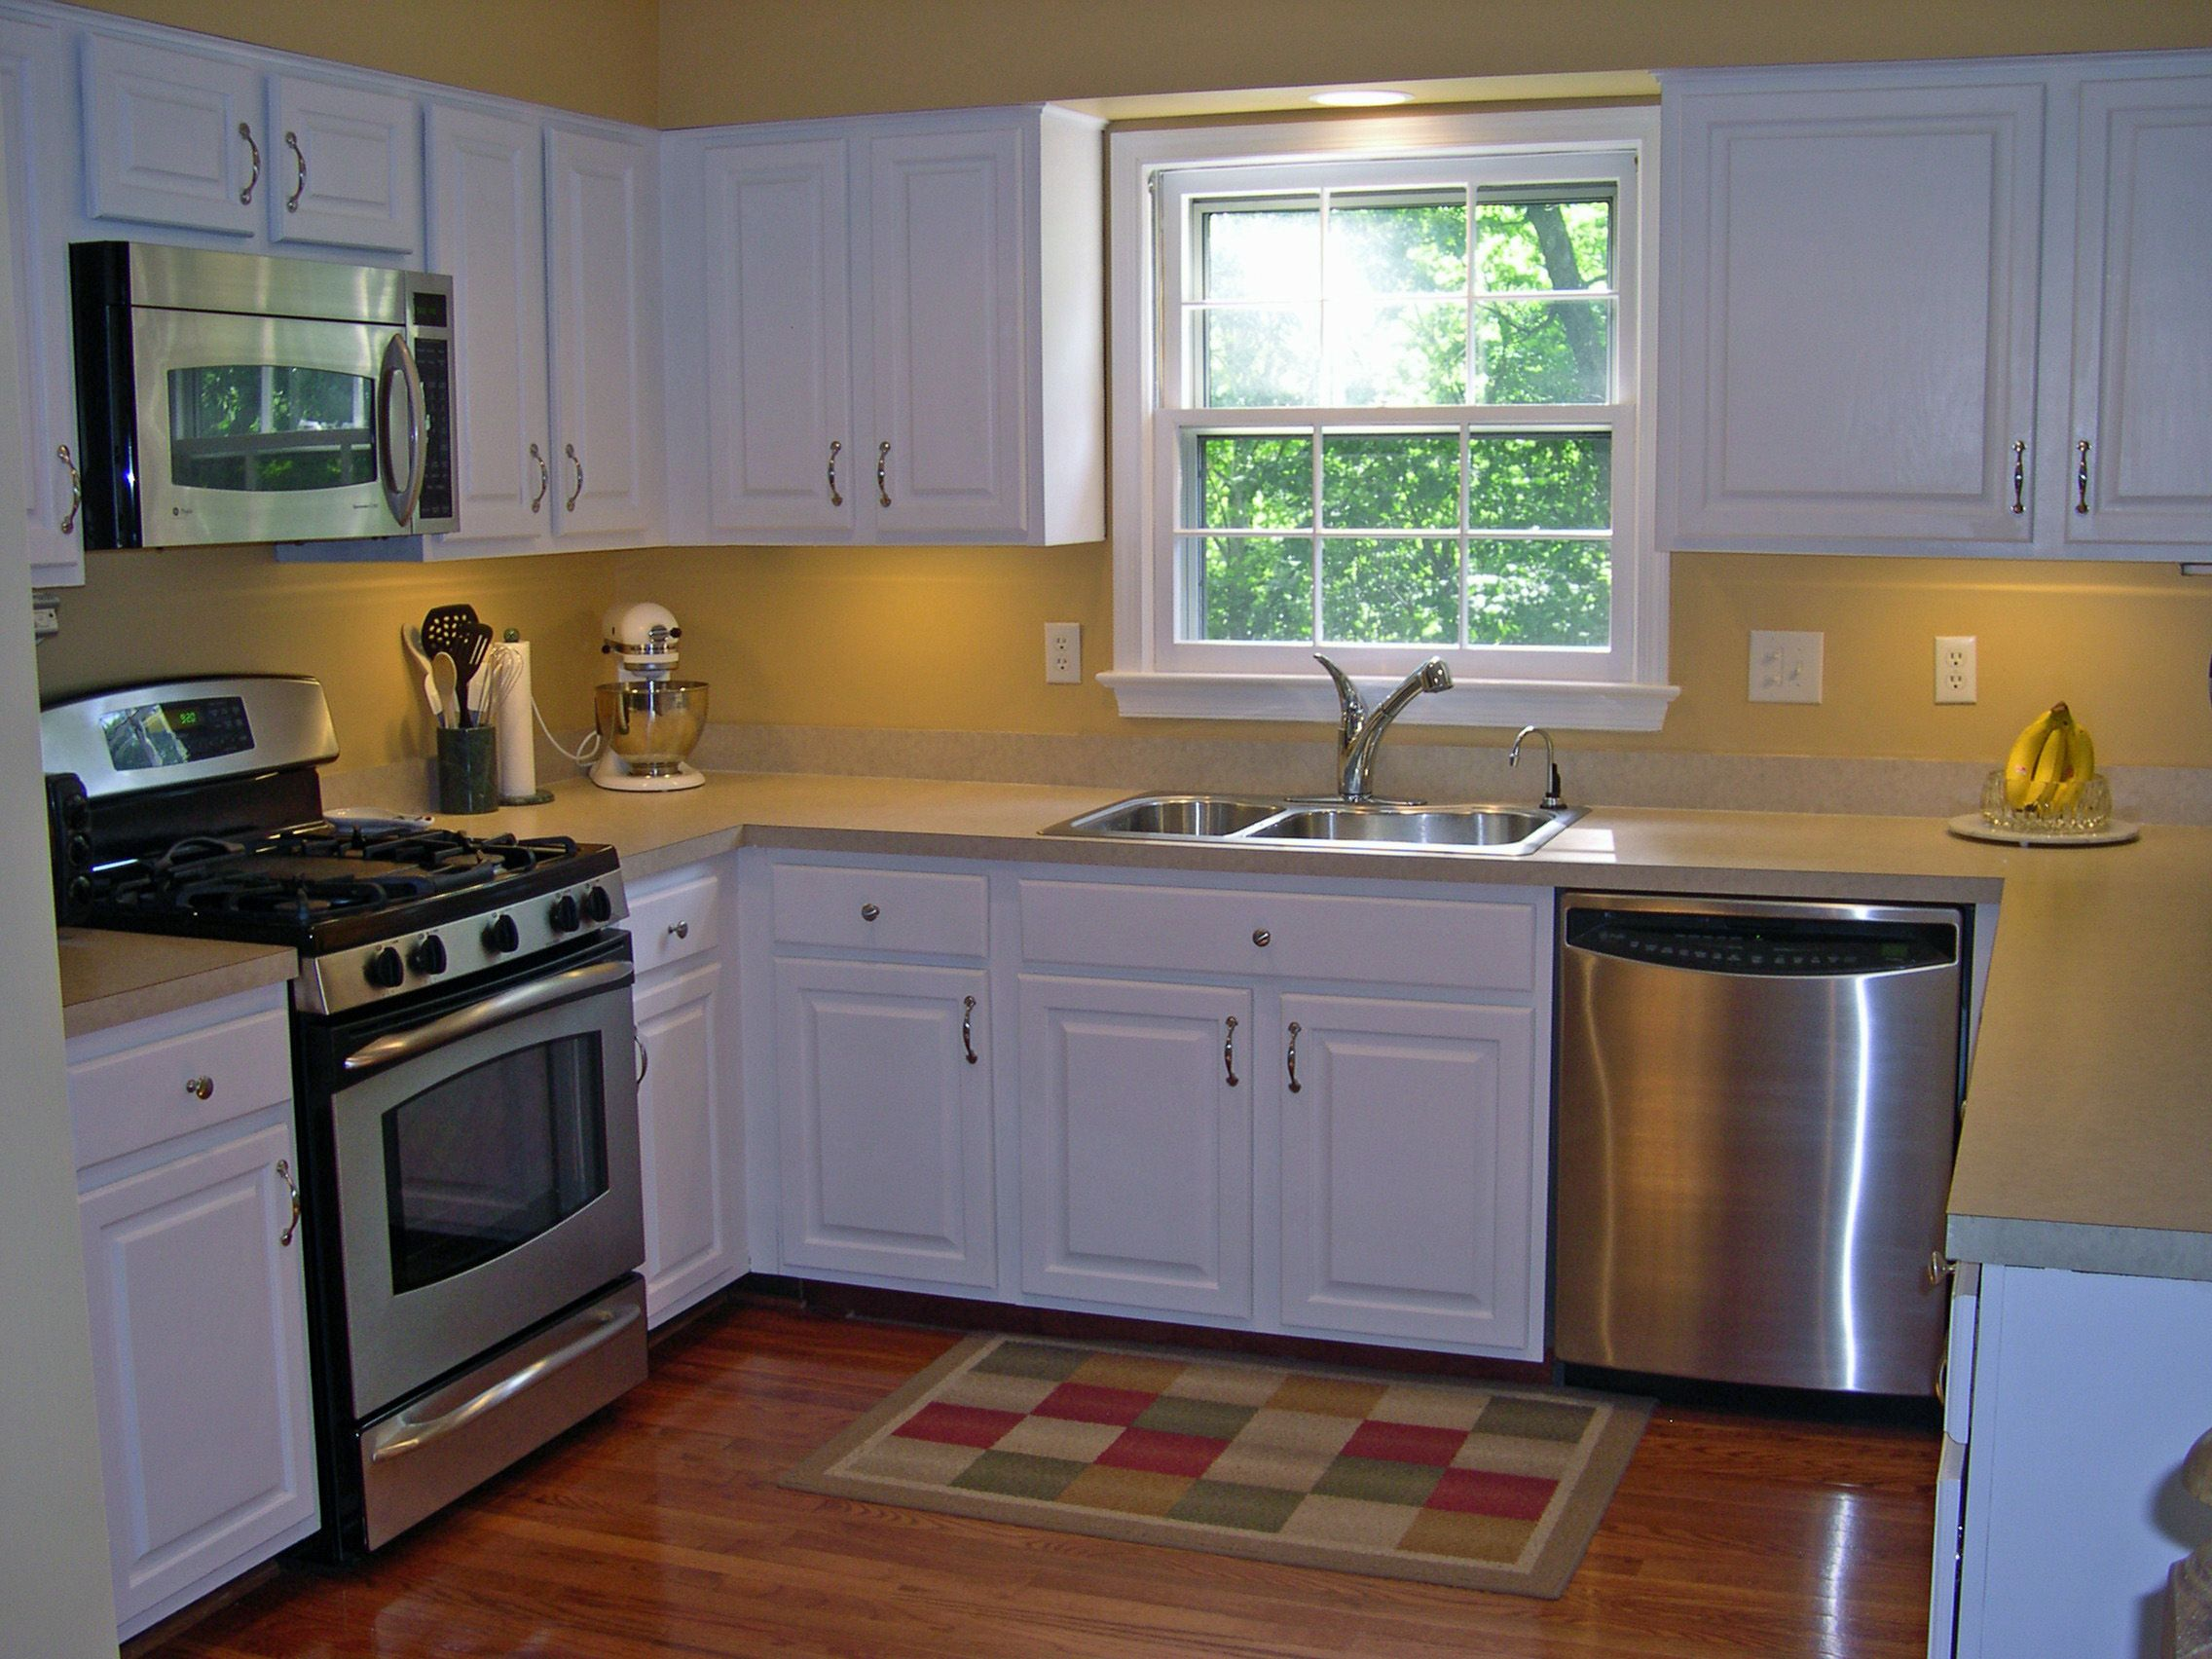 small kitchen remodeling ideas small kitchen remodel ideas layout vectronstudios com on kitchen remodel ideas id=72838